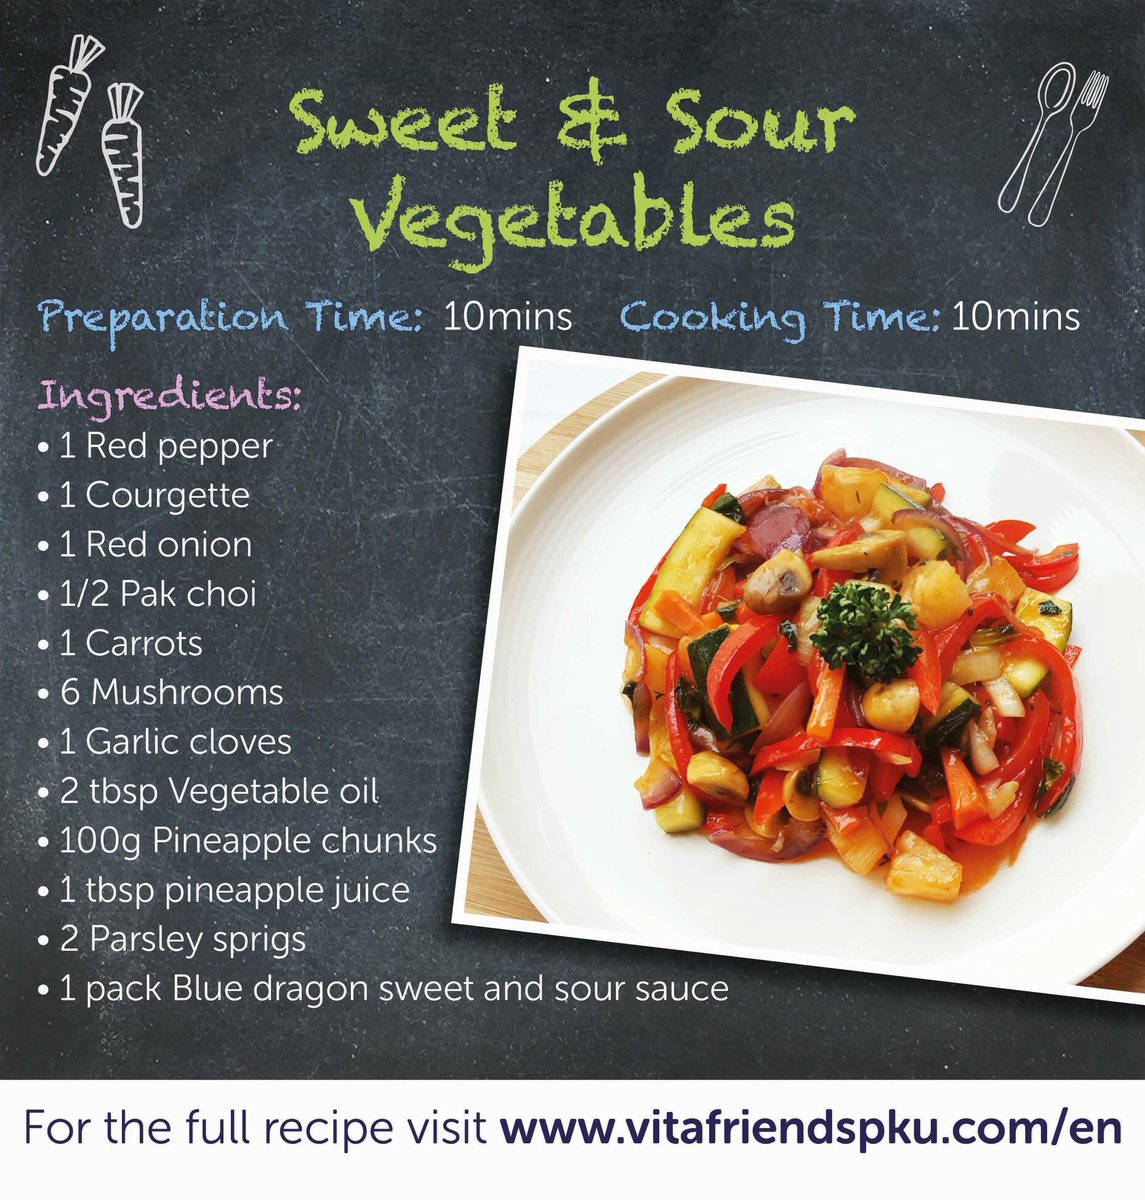 It&#39;s the weekend! And it&#39;s not just any old weekend. It&#39;s Bank Holiday Weekend! It doesn&#39;t matter if the weather is sweet or sour, we&#39;ve got the perfect Chinese Fakeaway to celebrate! Our brand new Sweet and Sour Vegetables recipe is here:  https://www. vitafriendspku.com/en/recipes/low -protein-sweet-and-sour/ &nbsp; …  #pkurecipes #pku <br>http://pic.twitter.com/kU4ATUbfeE